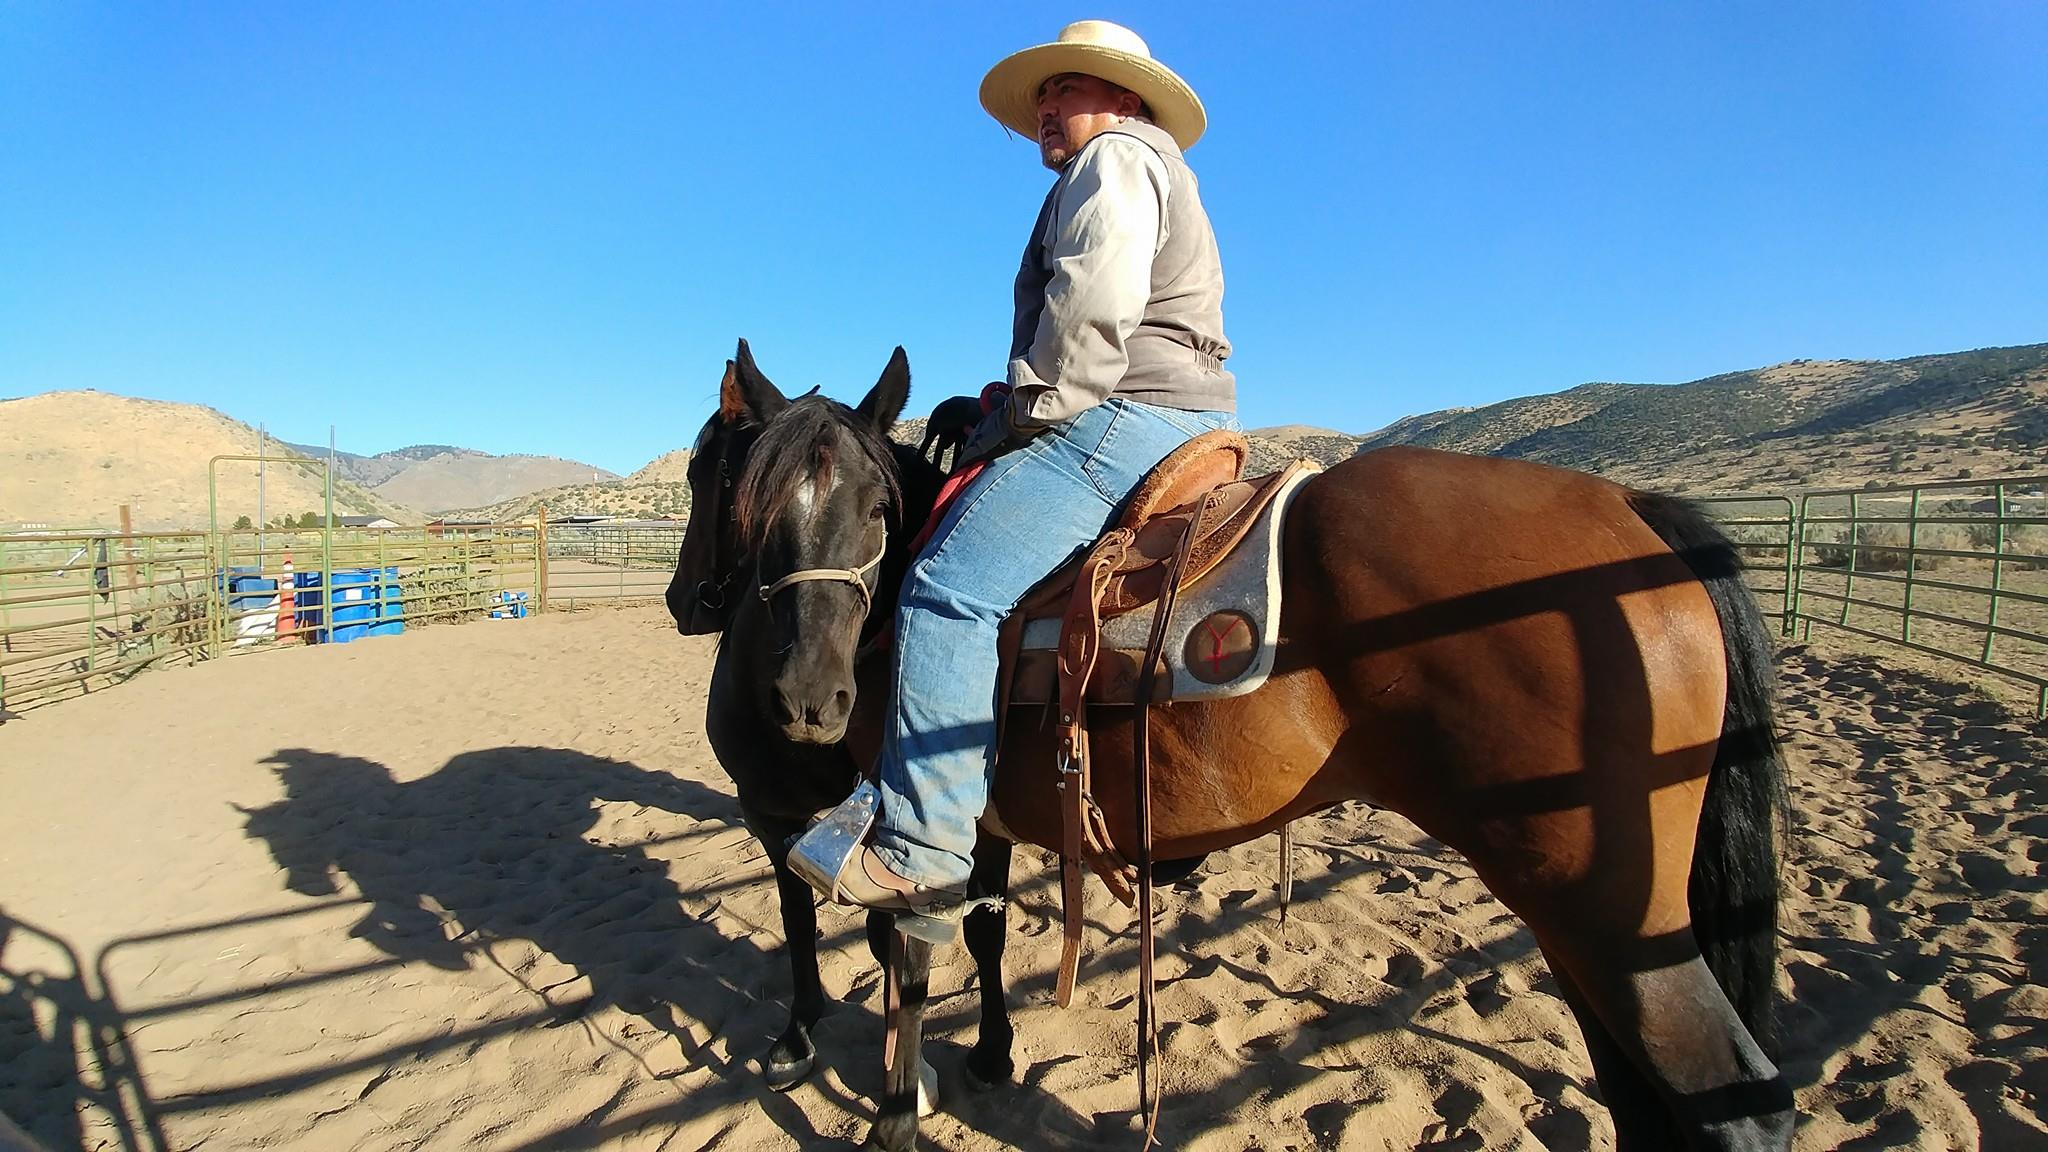 working a horseback, horse training